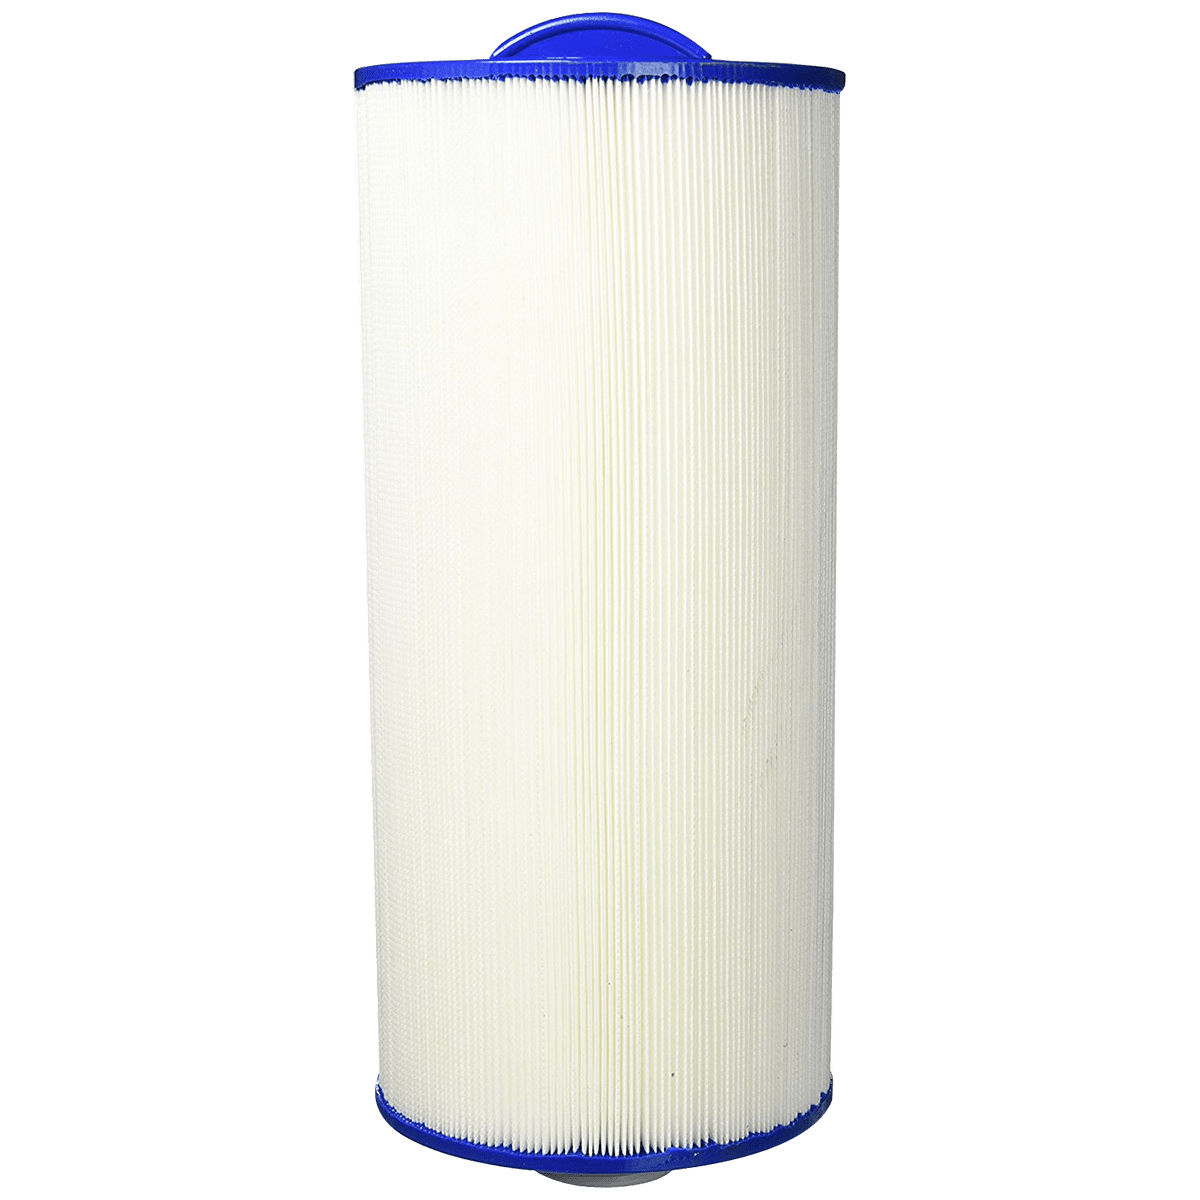 Jacuzzi Replacement Pool Filter Cartridge Equipment Pool Filters Replacement Filter Cartridges